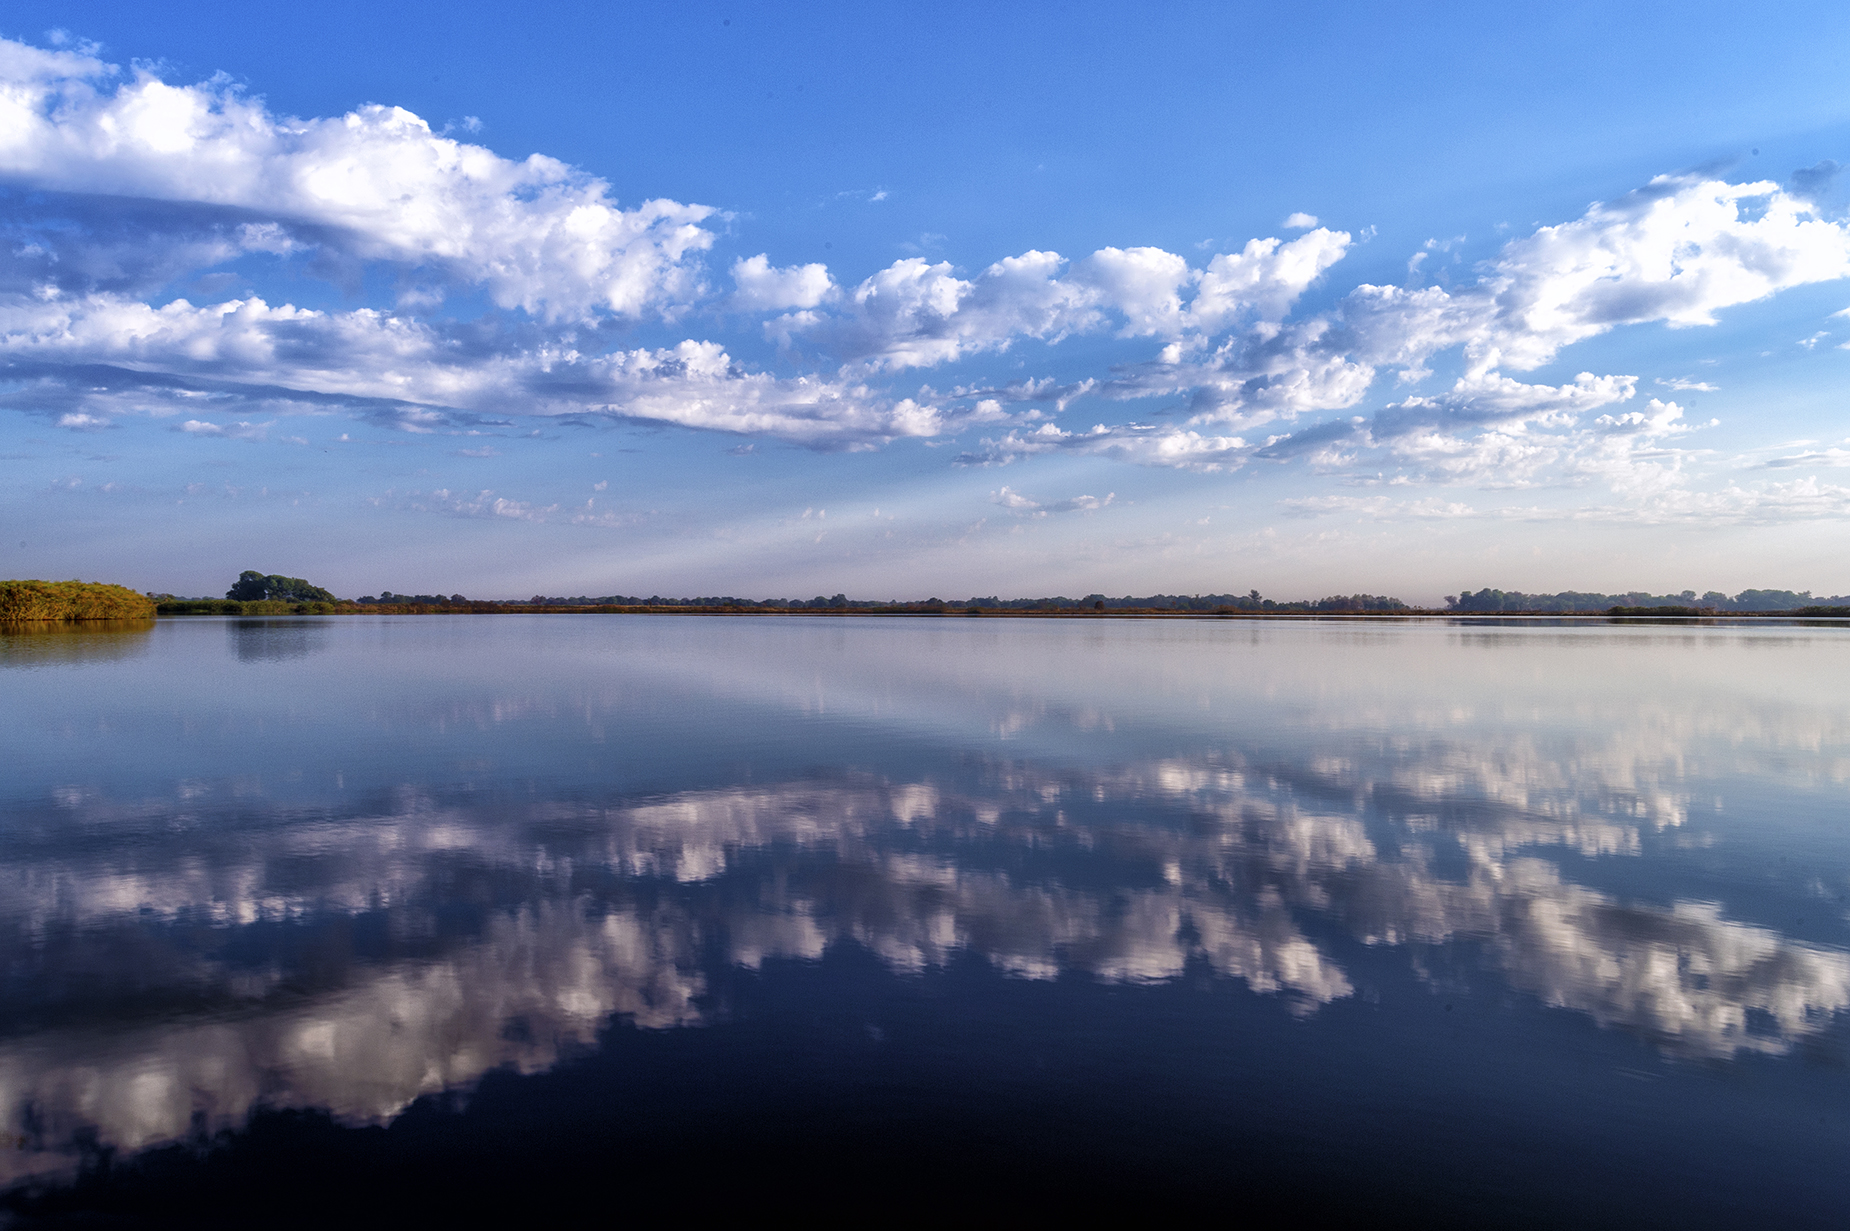 Okavango_Delta_Reflection_5